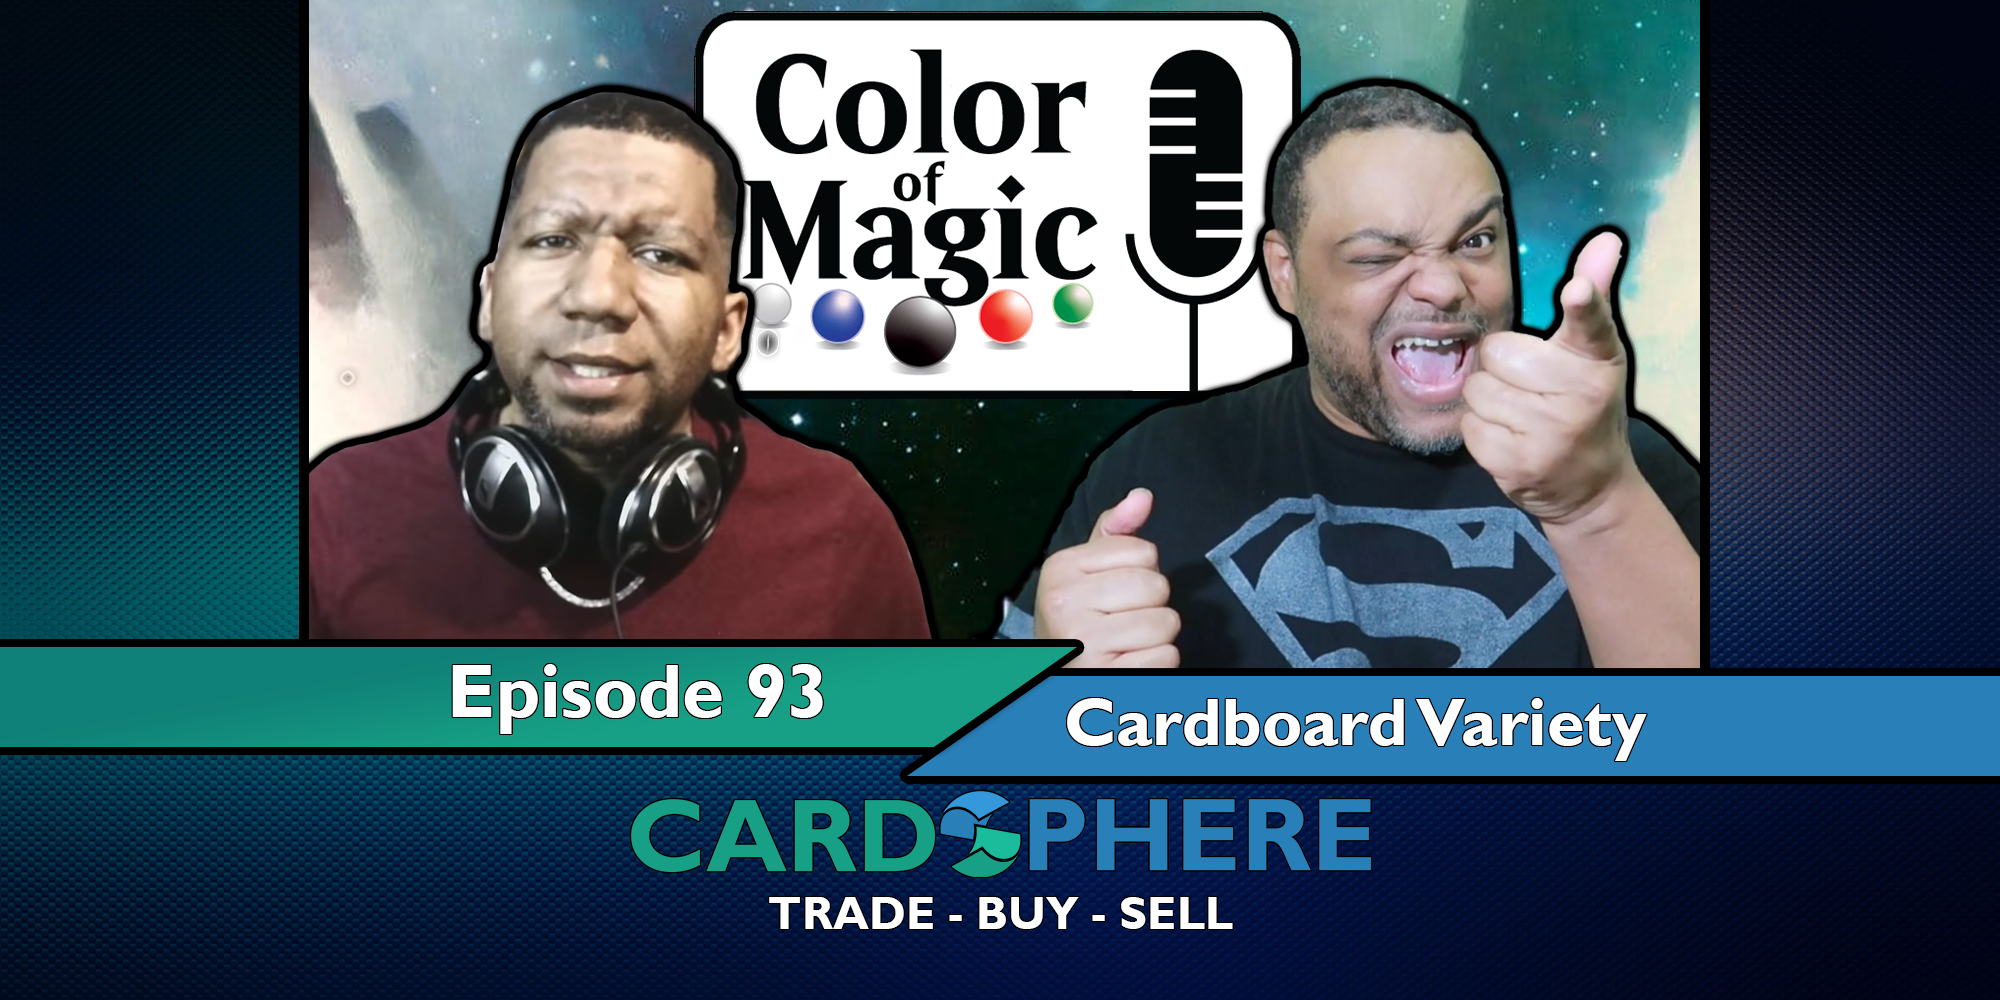 Color of Magic Episode 93 - Cardboard Variety